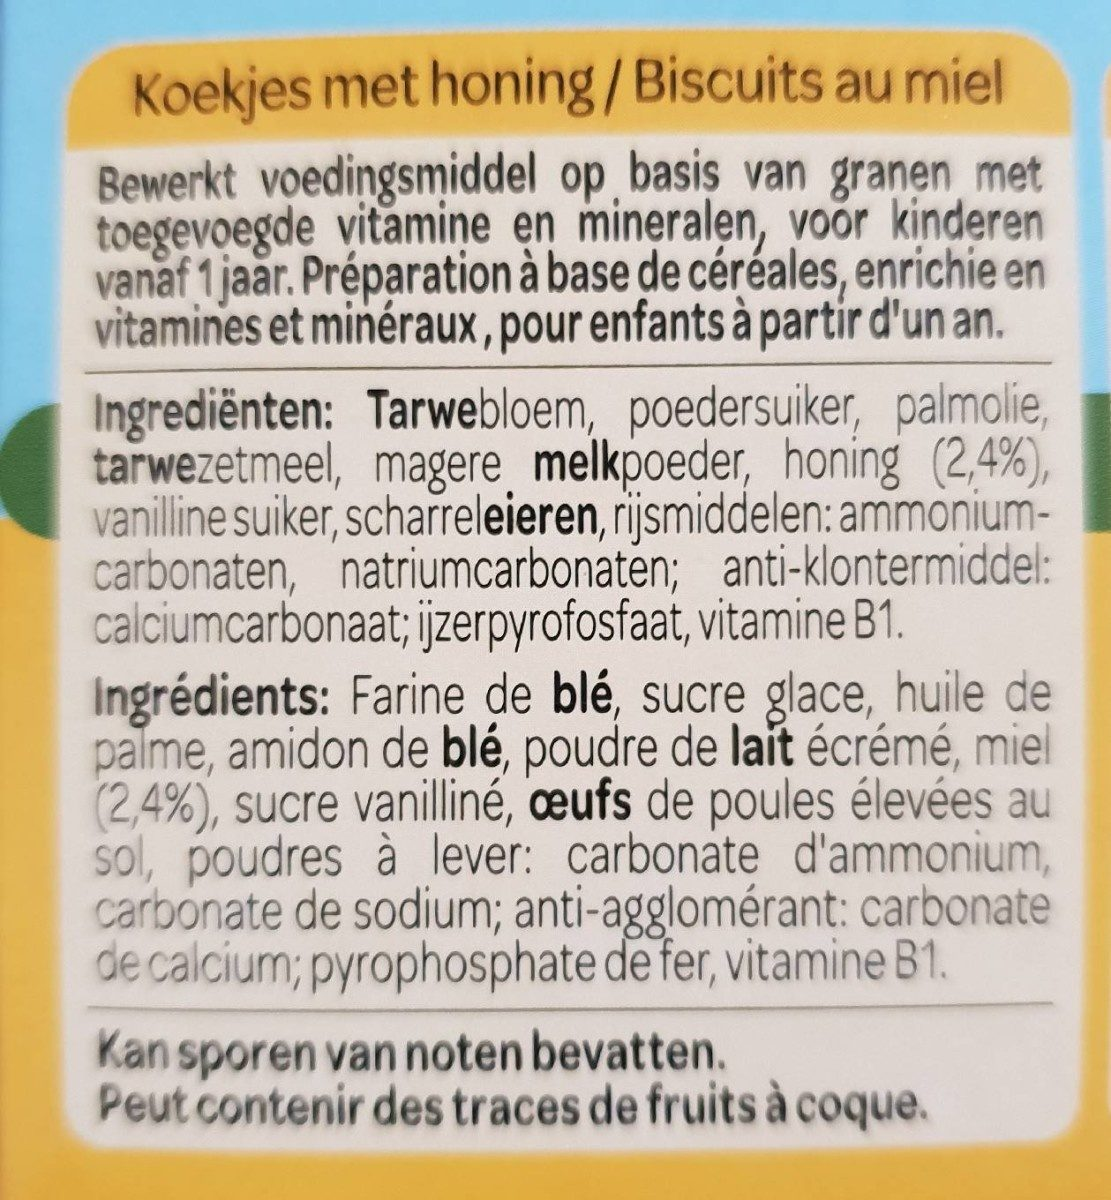 Biscuits nounours au miel - Ingredients - fr